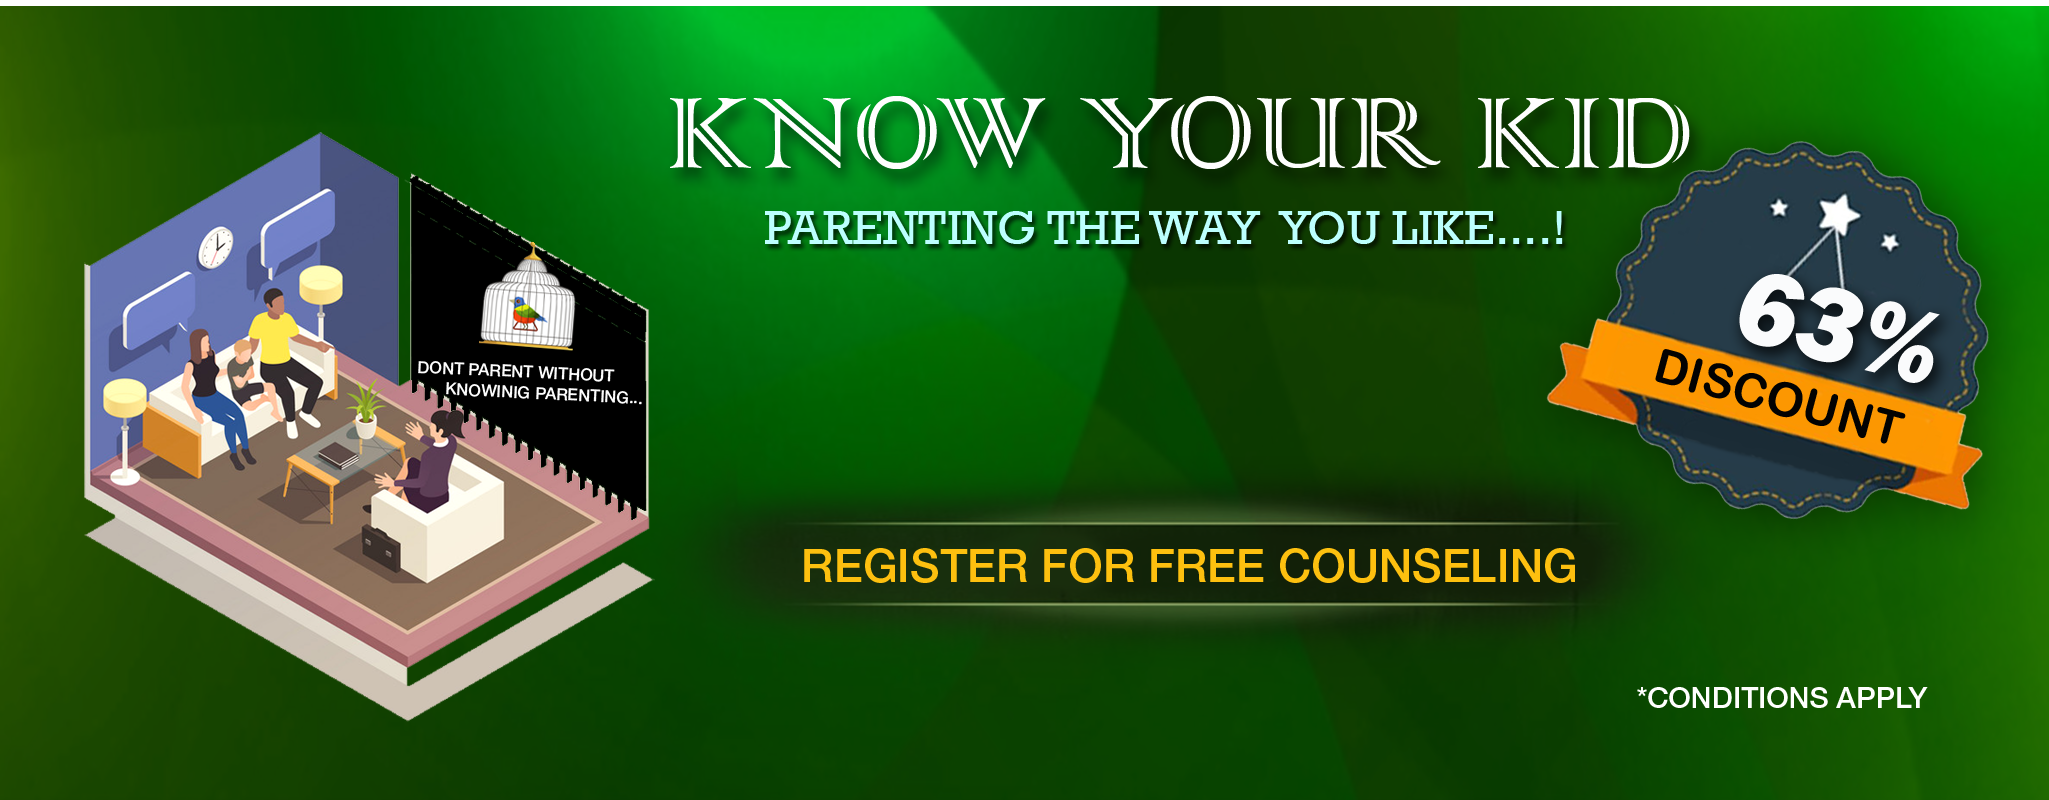 know-your-kid